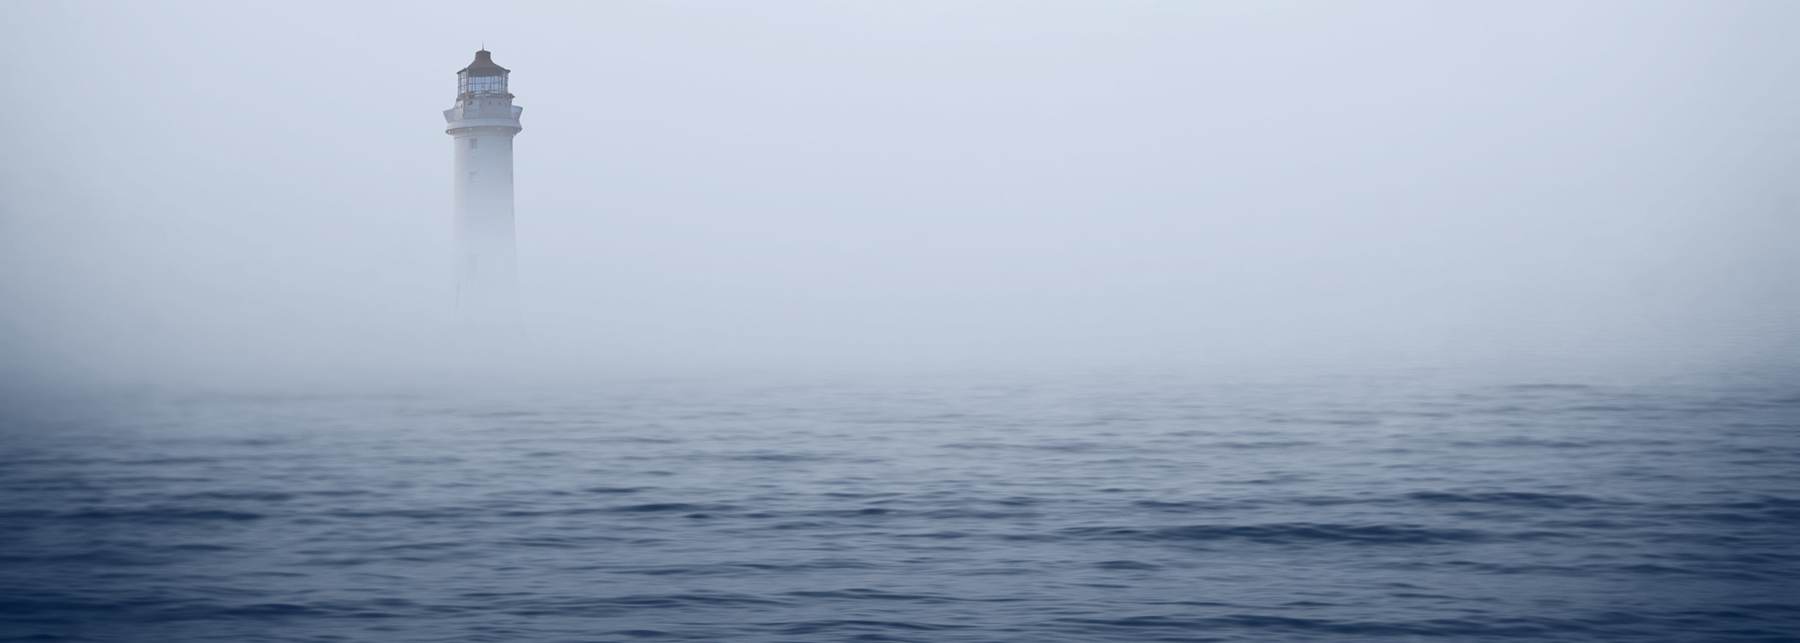 Image of a lighthouse in the fog, which obscures the shoreline. The ocean is calm but dark.